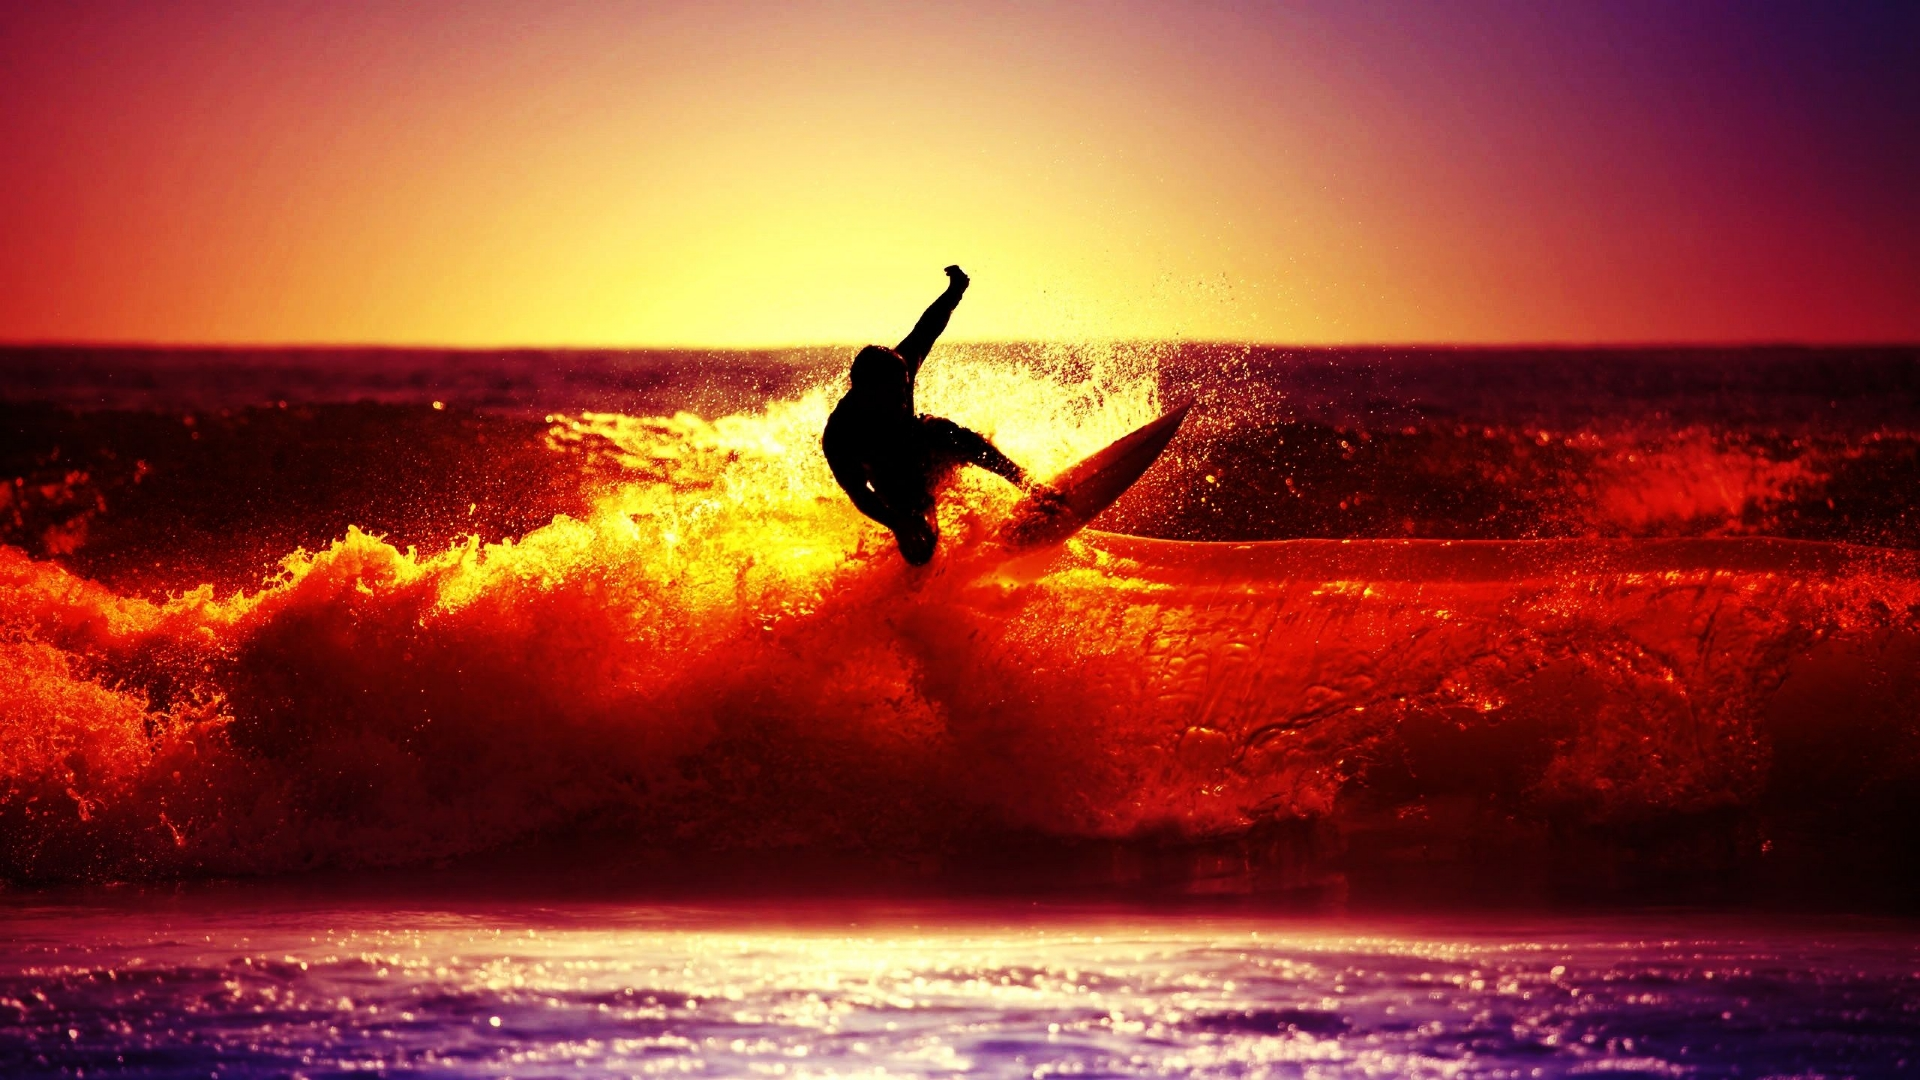 Attached Image: beachsurferwallpaper2917_1920x1080.jpg